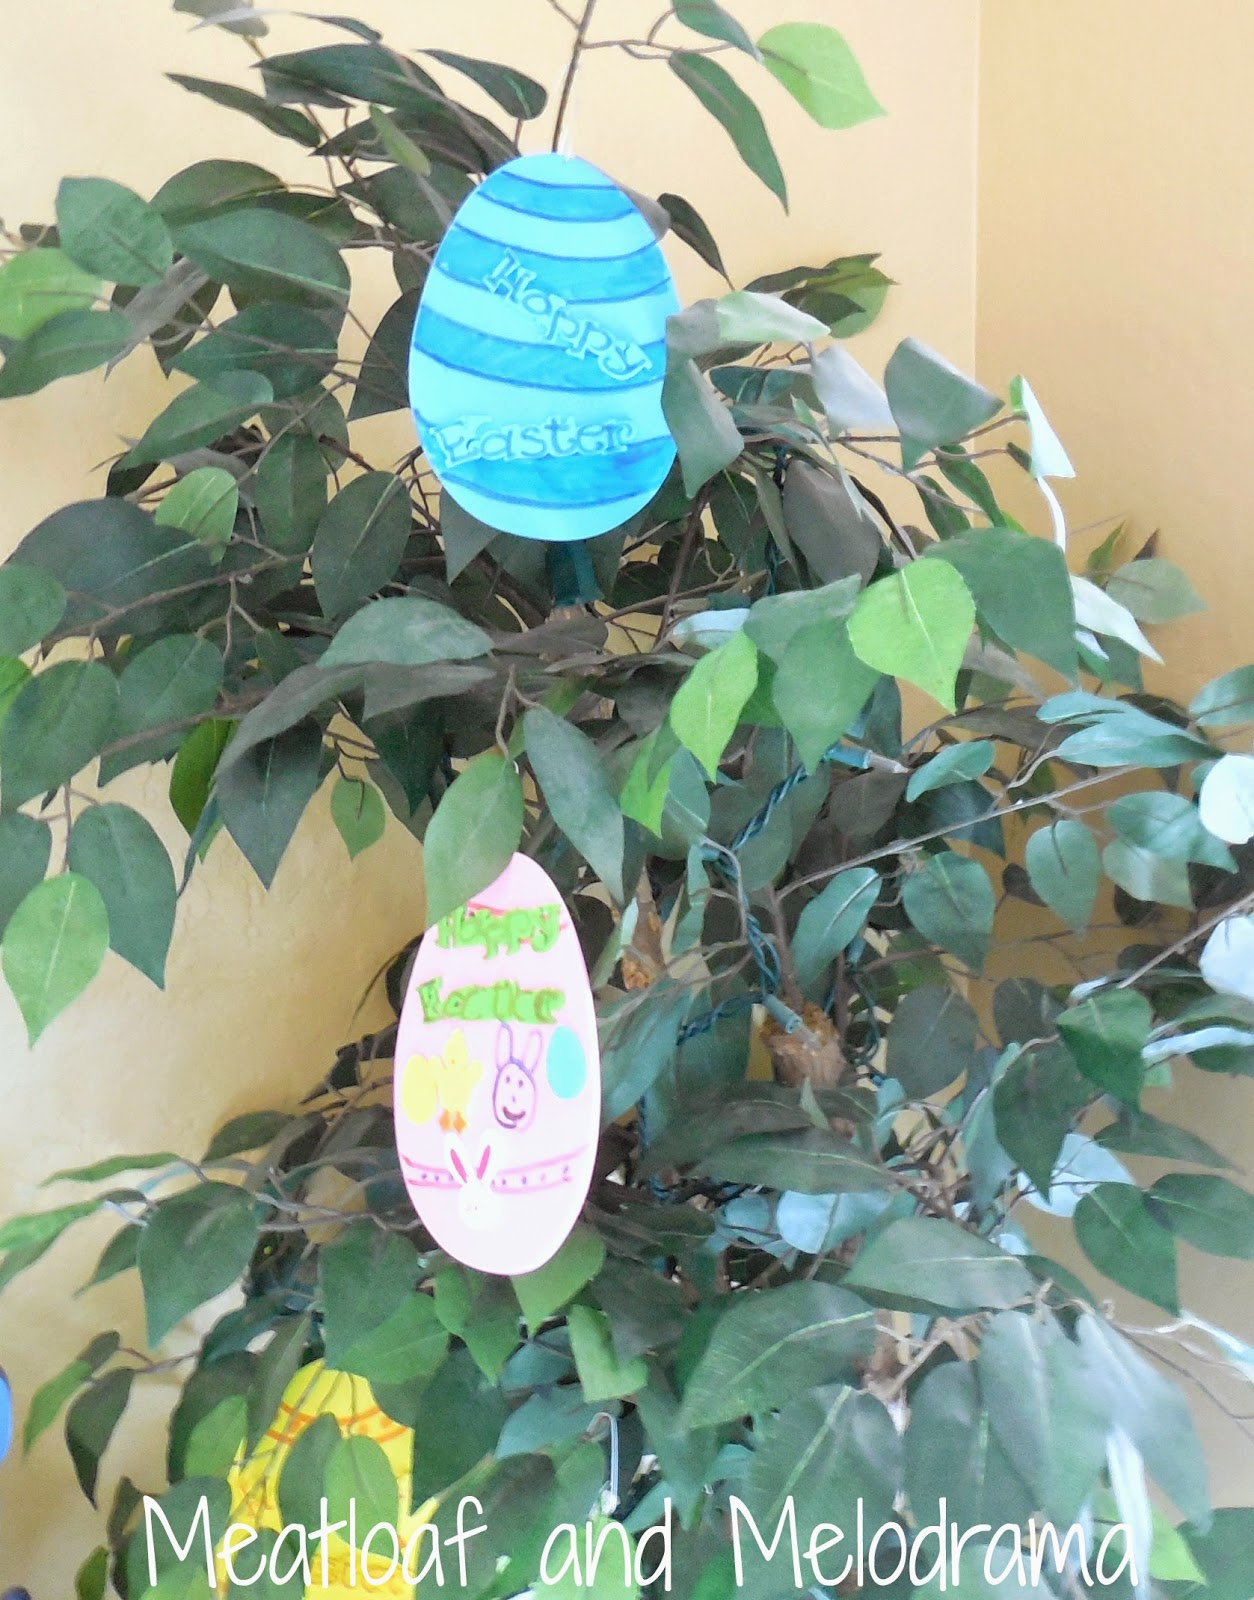 decorated foam eggs hanginf from tree